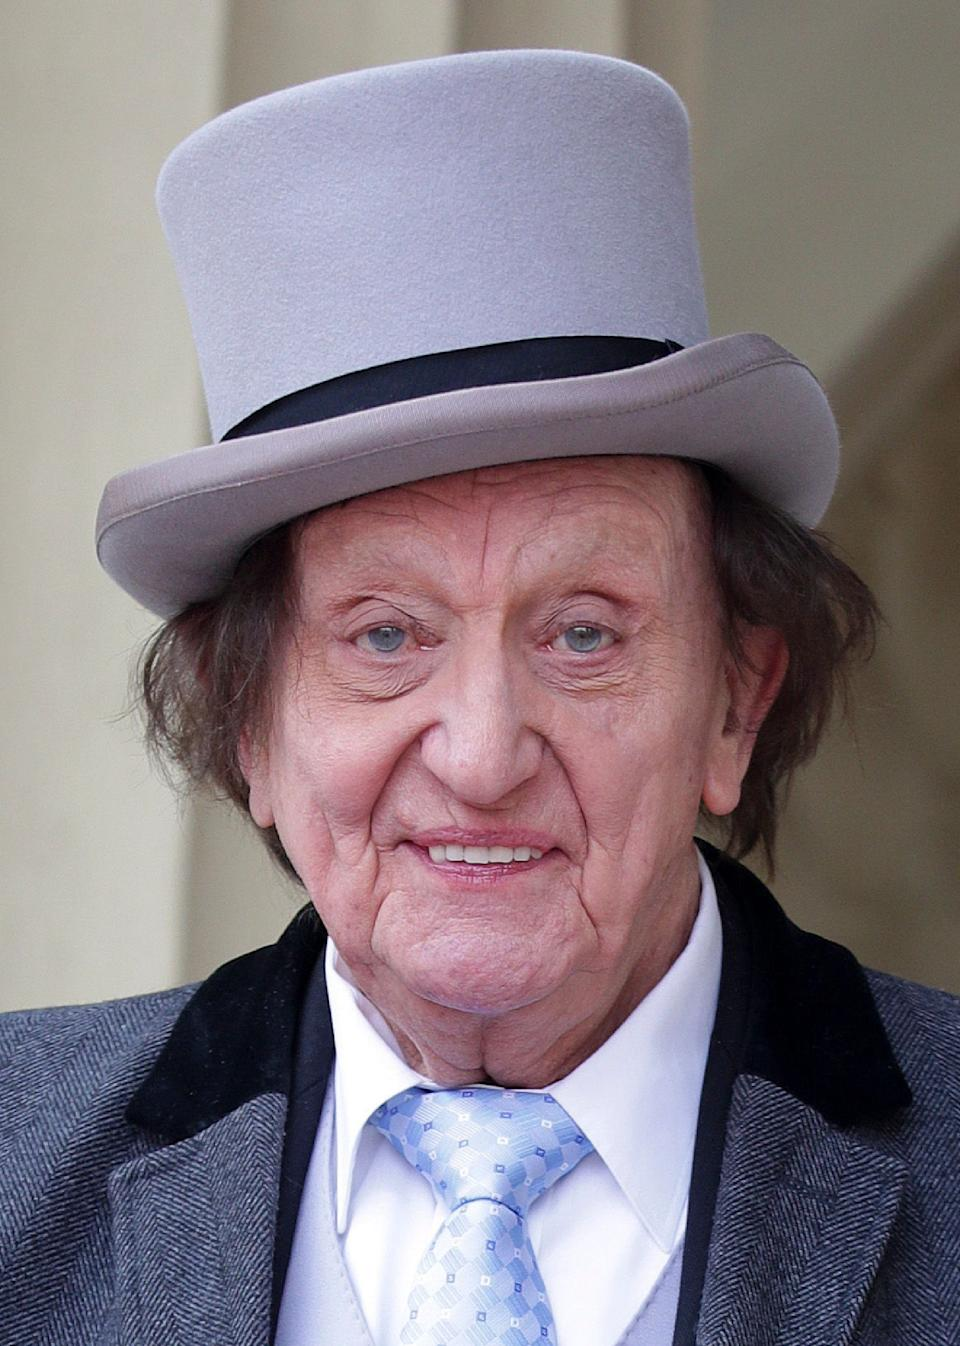 """<strong>Ken Dodd</strong><br /><strong>Comedian and Entertainer(b. 1927)</strong><br /><br />The National Treasure, famous for his epic stand-up shows, as well as his Diddy Men and tickling stick, <a href=""""http://www.huffingtonpost.co.uk/entry/ken-dodd-dead_uk_5aa5d78fe4b07047bec7c405"""">died just days after leaving hospital</a>. He married Anne Jones, his partner of 40 years,just two days before he passed away."""